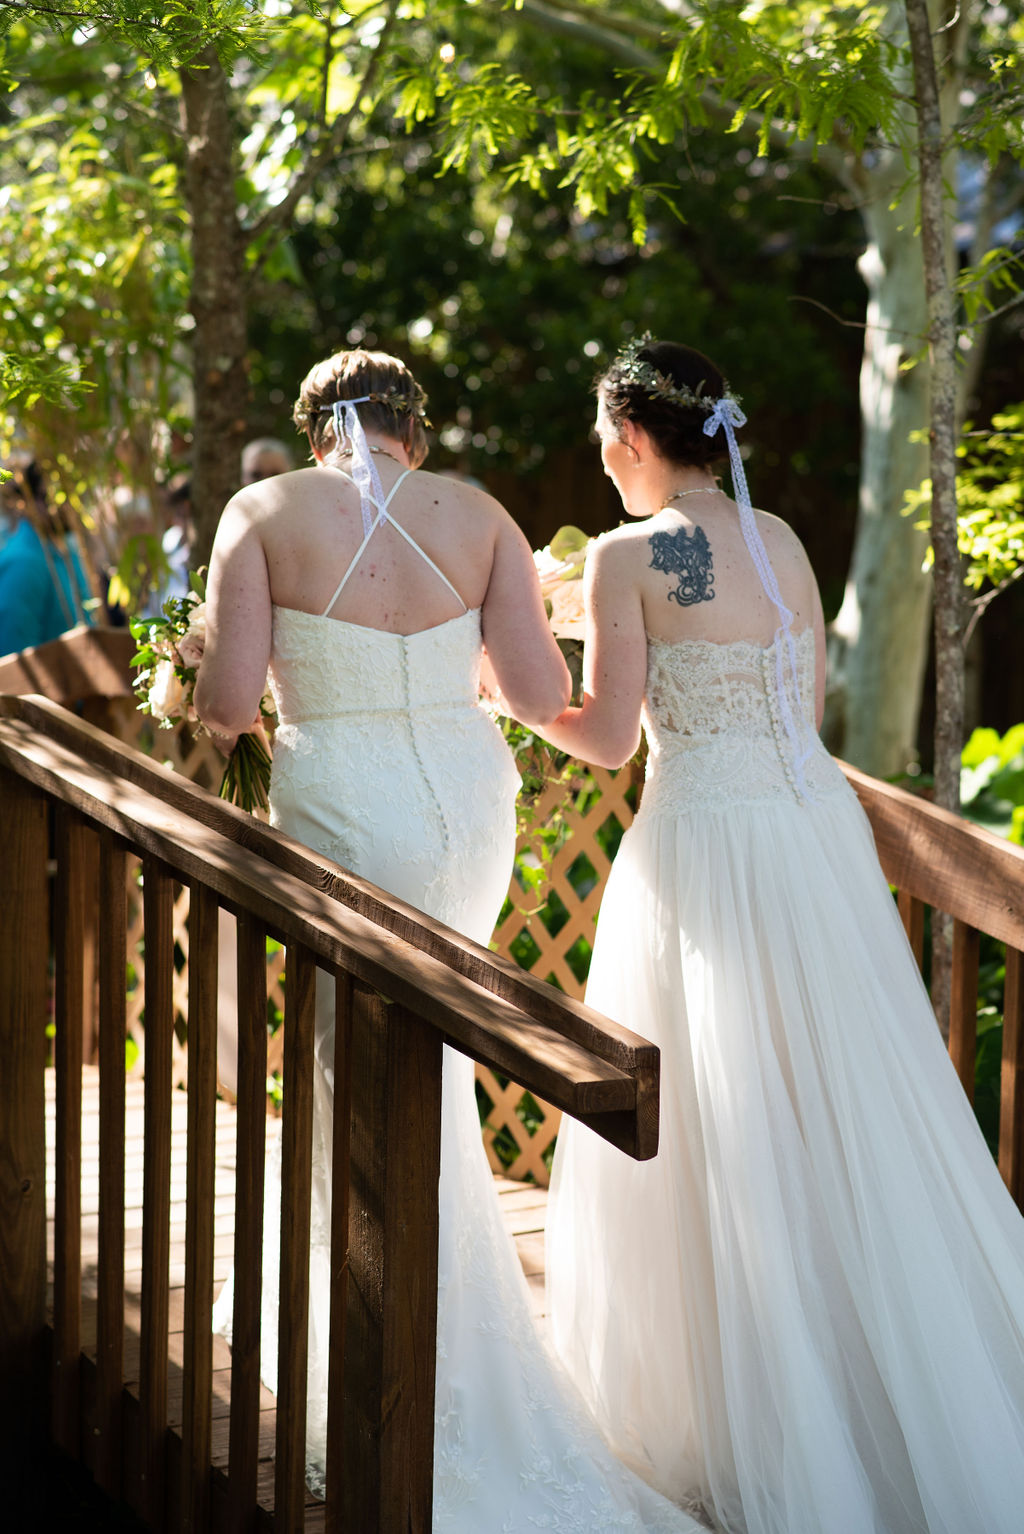 st-augustine-photographer-wedding-house-of-assembly-events-st-augustine-florida-sarah-annay9.jpg